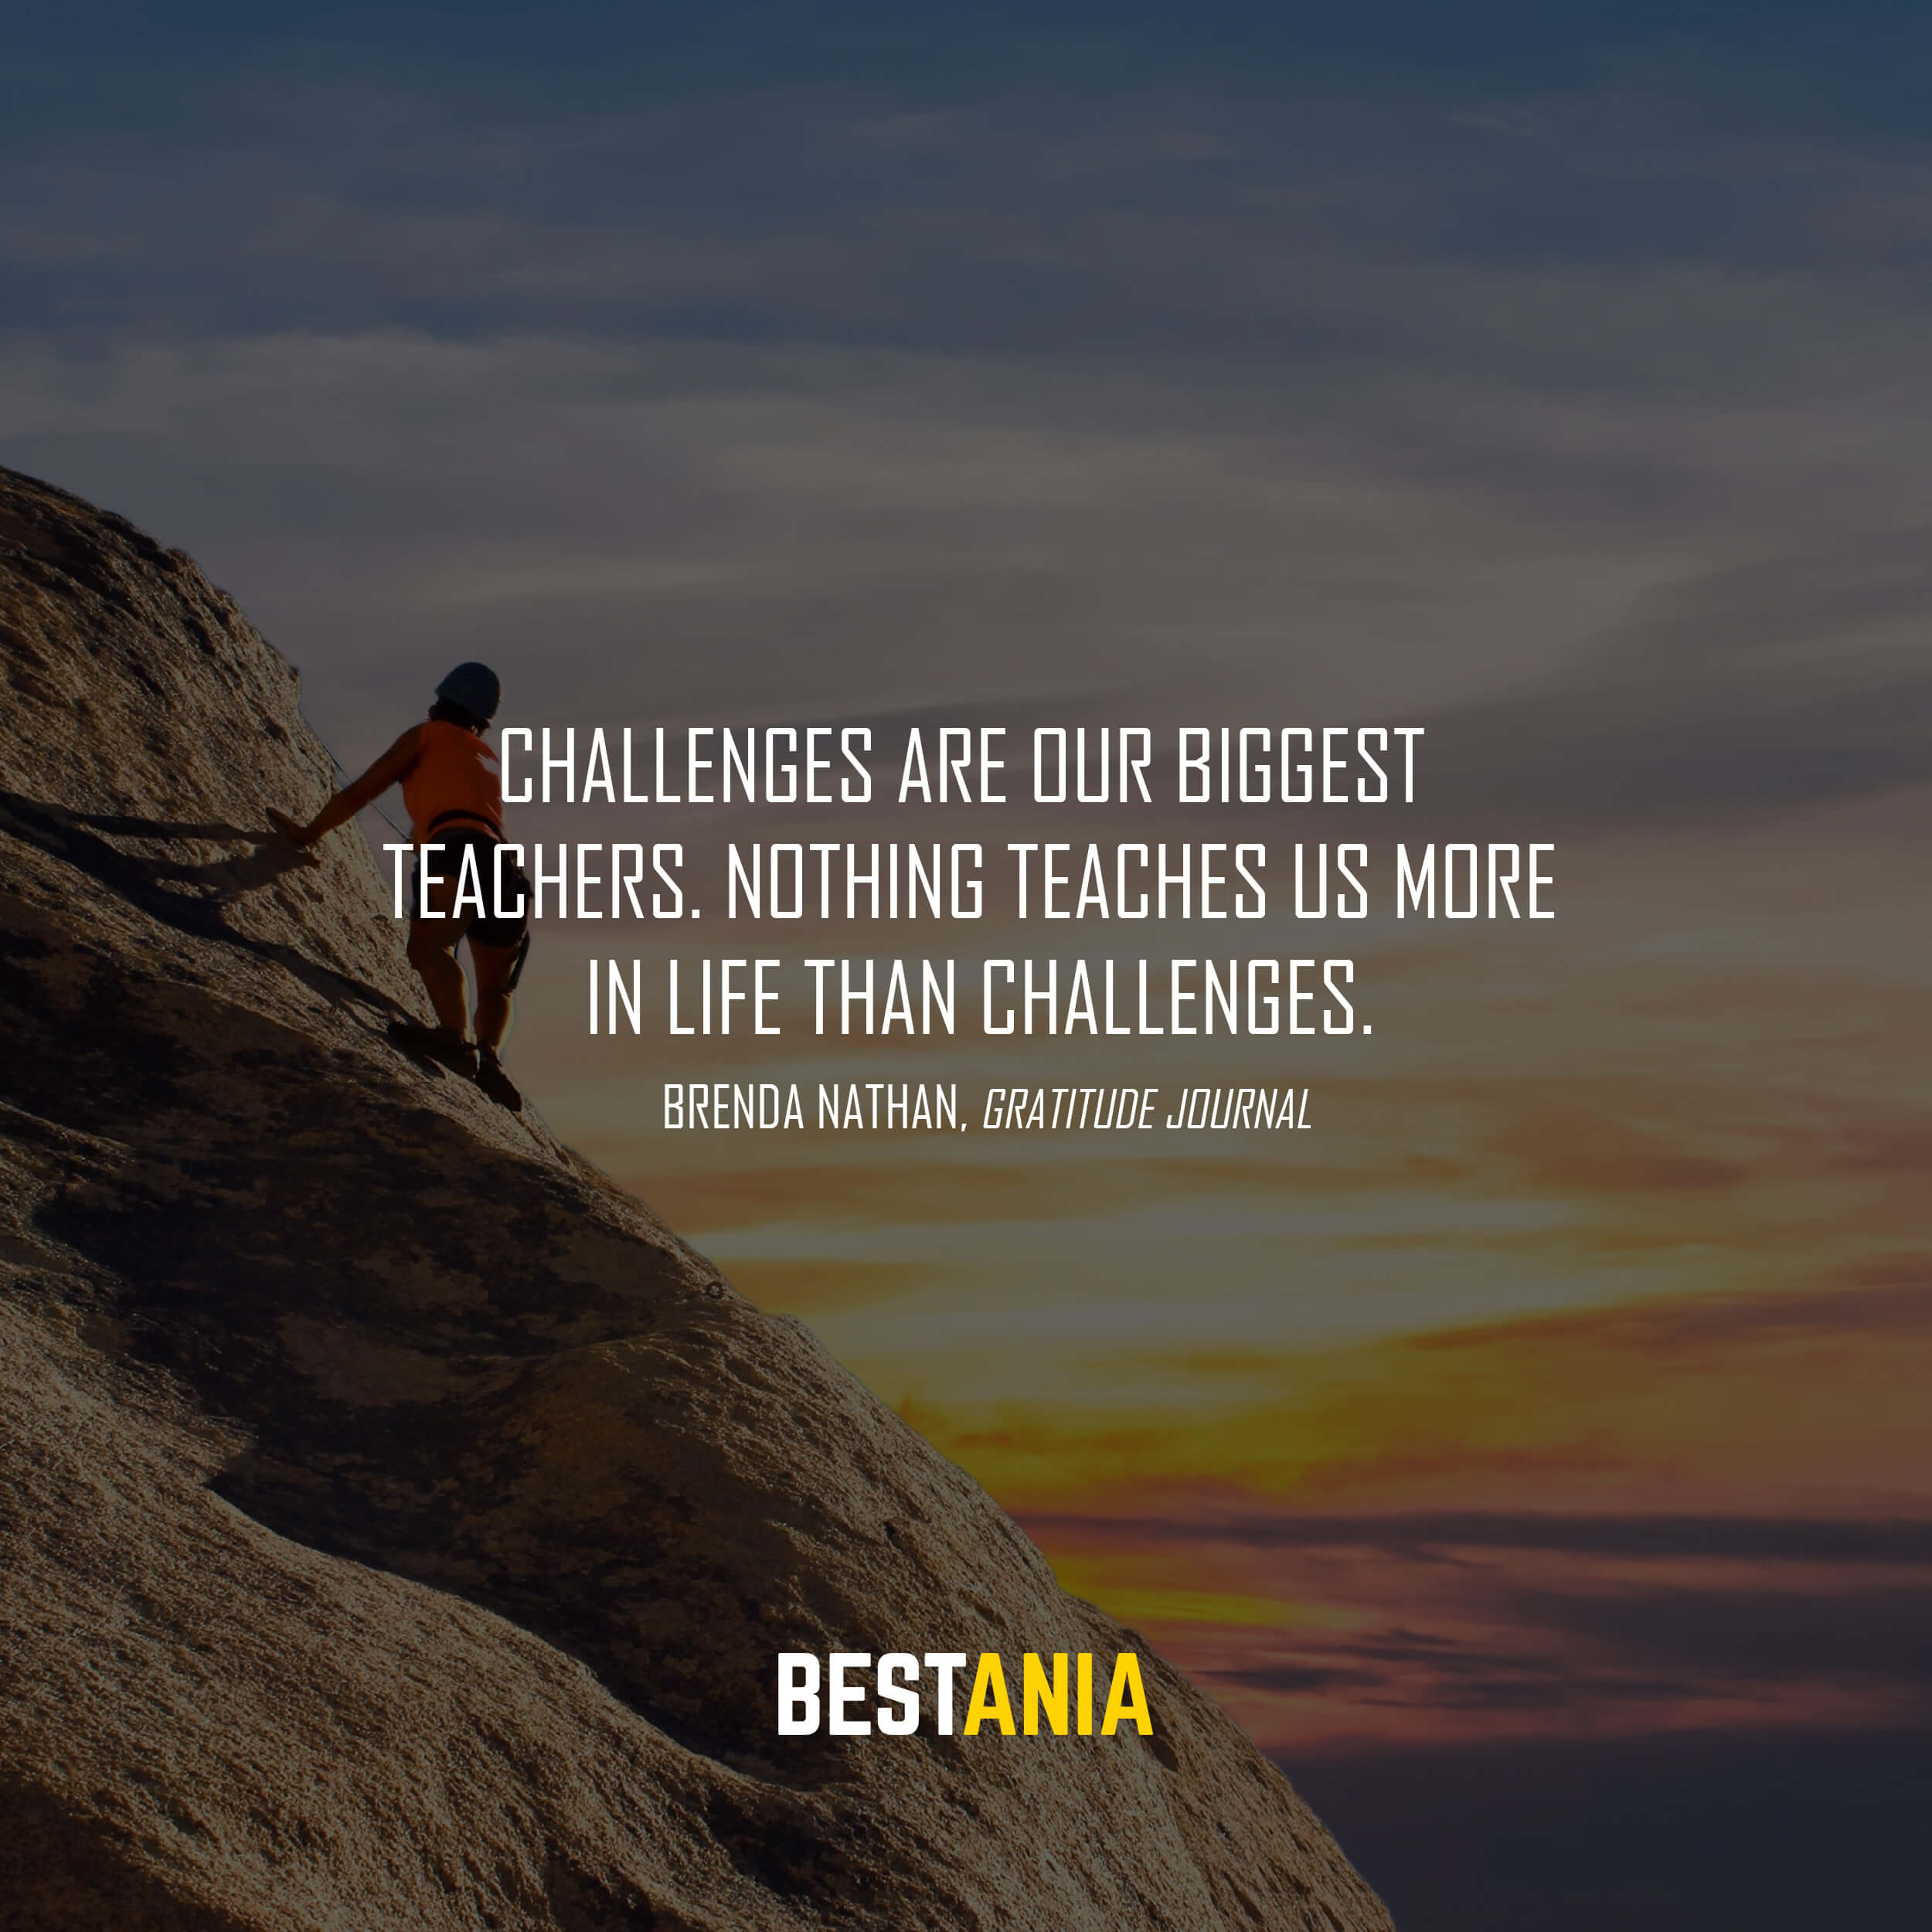 """""""Challenges are our biggest teachers. Nothing teaches us more in life than challenges."""" Brenda Nathan, Gratitude Journal"""